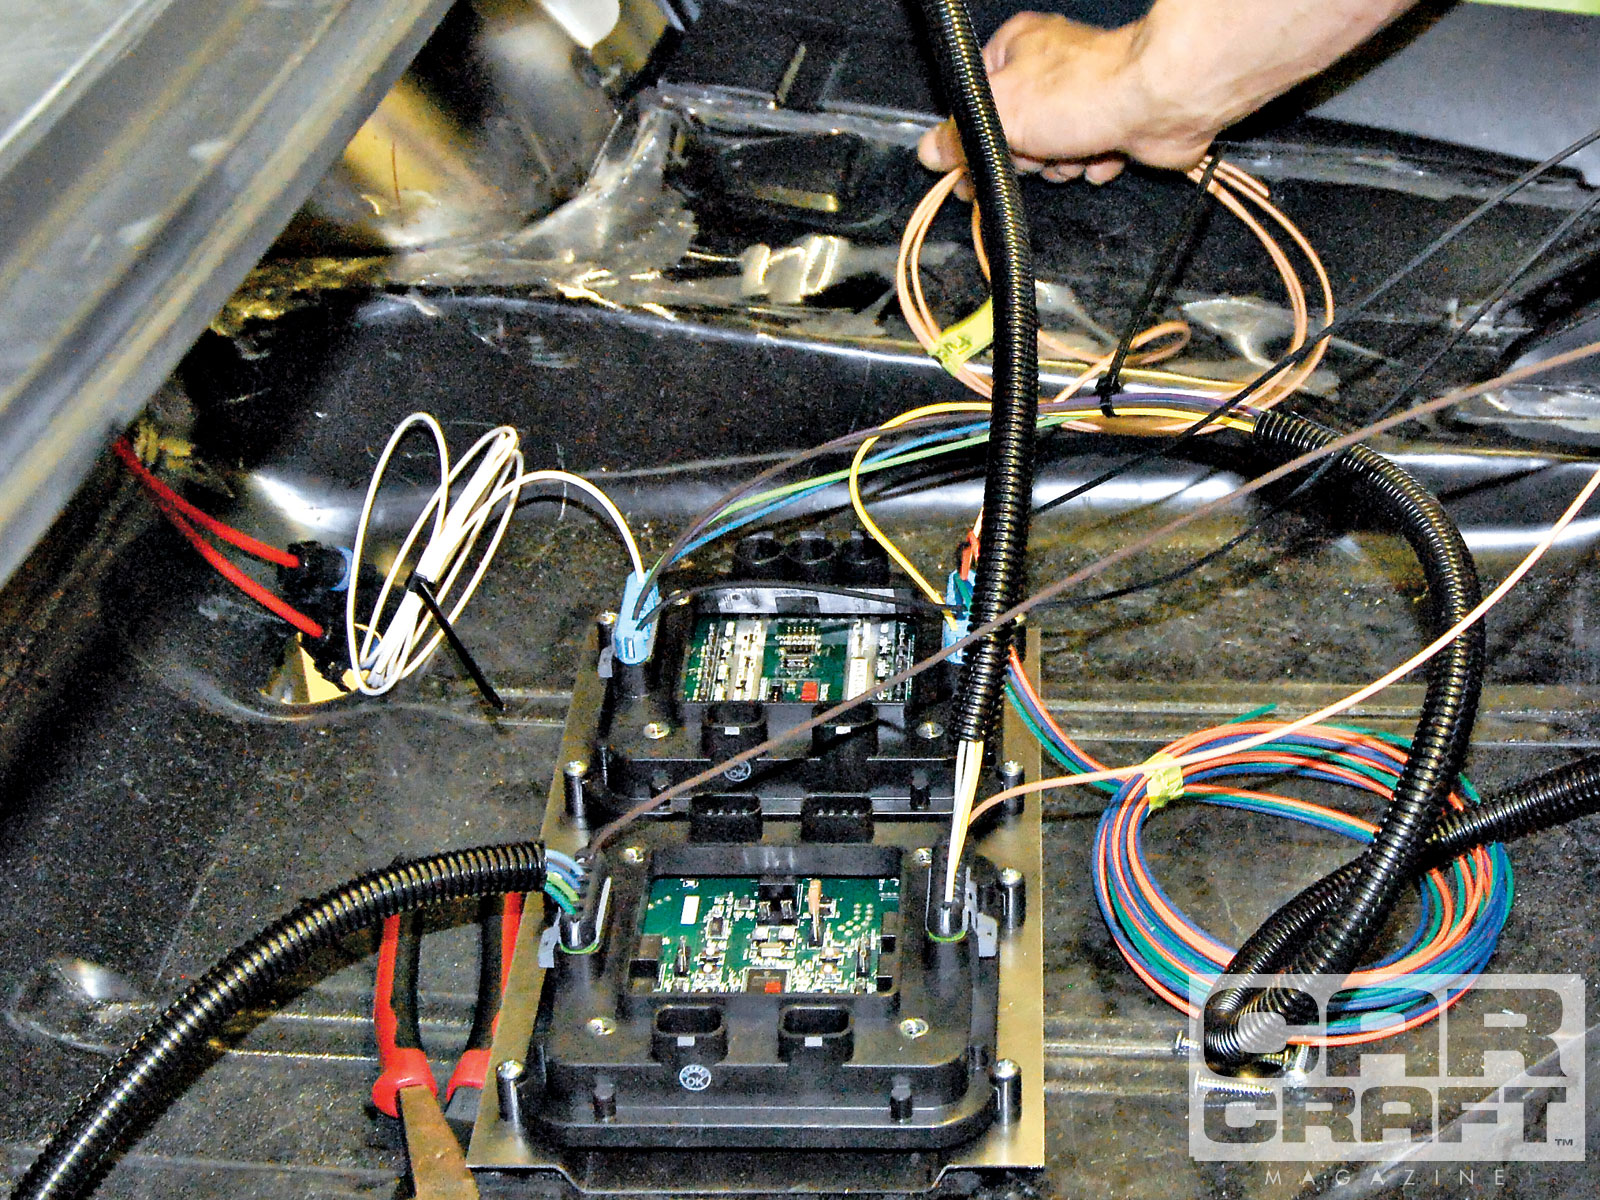 Wiring Harness Installation On Vehicle